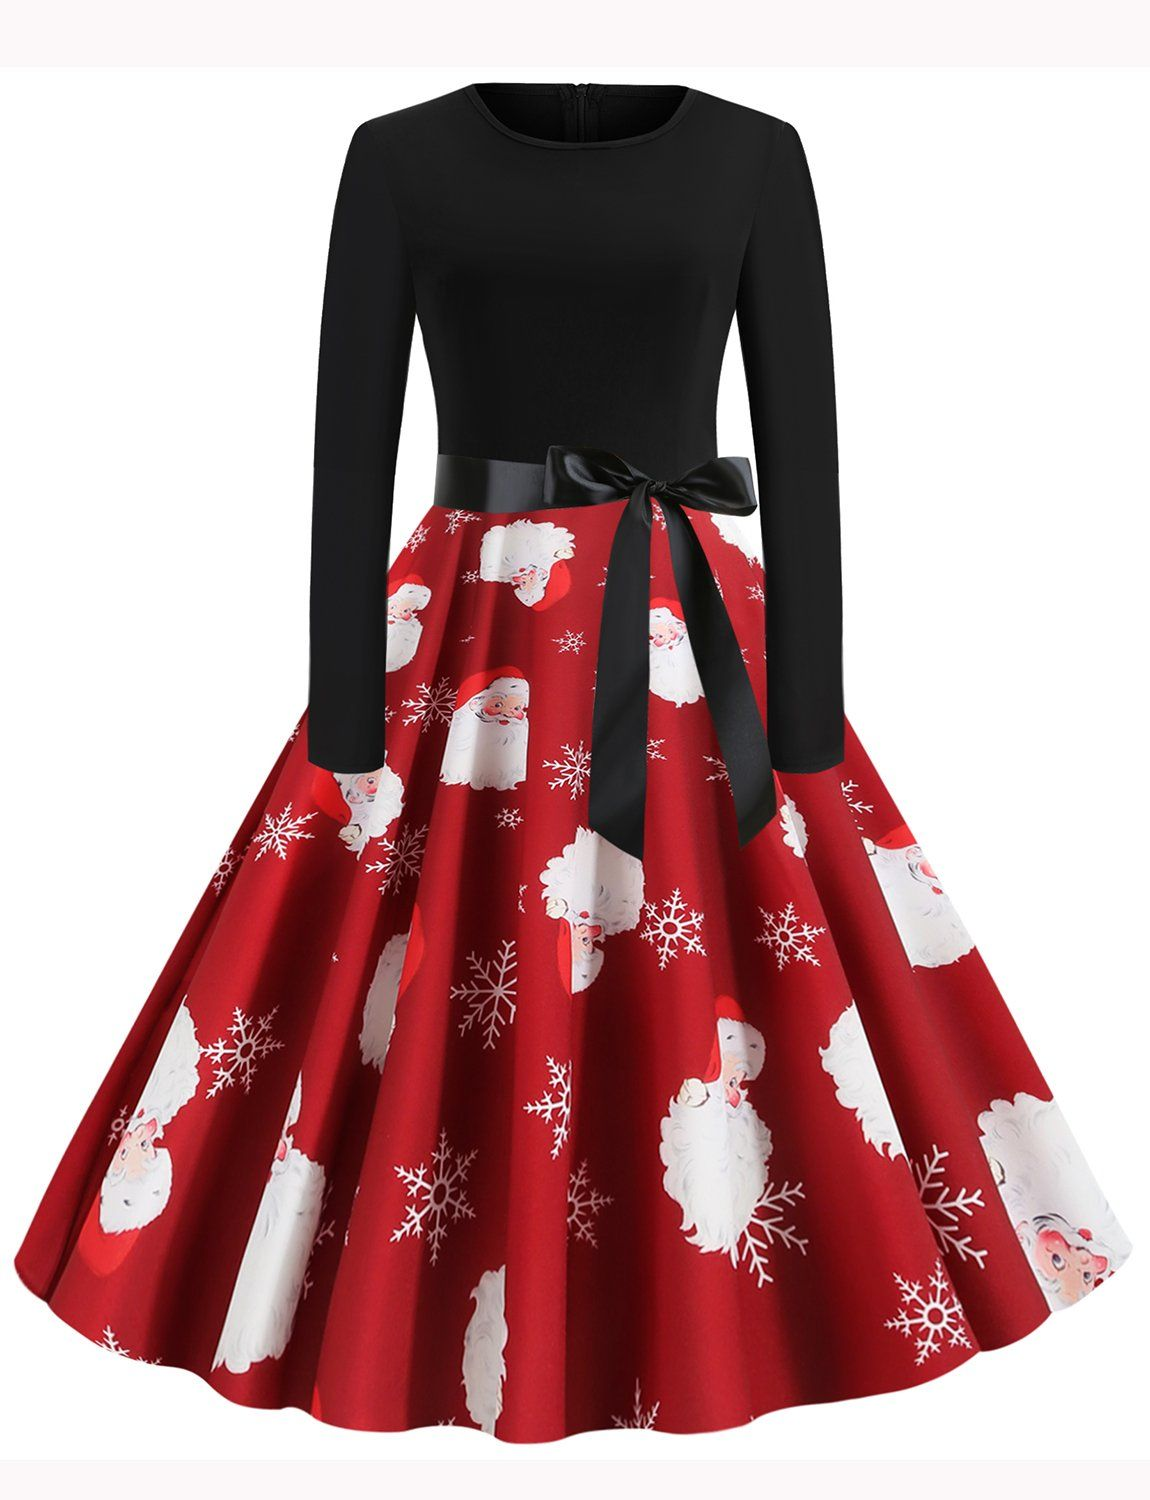 1950s Style Long Sleeve Scoop Father Christmas Swing Dresses Christmas Dress Women Party Dress Long Sleeve Christmas Dress Outfit [ 1500 x 1150 Pixel ]